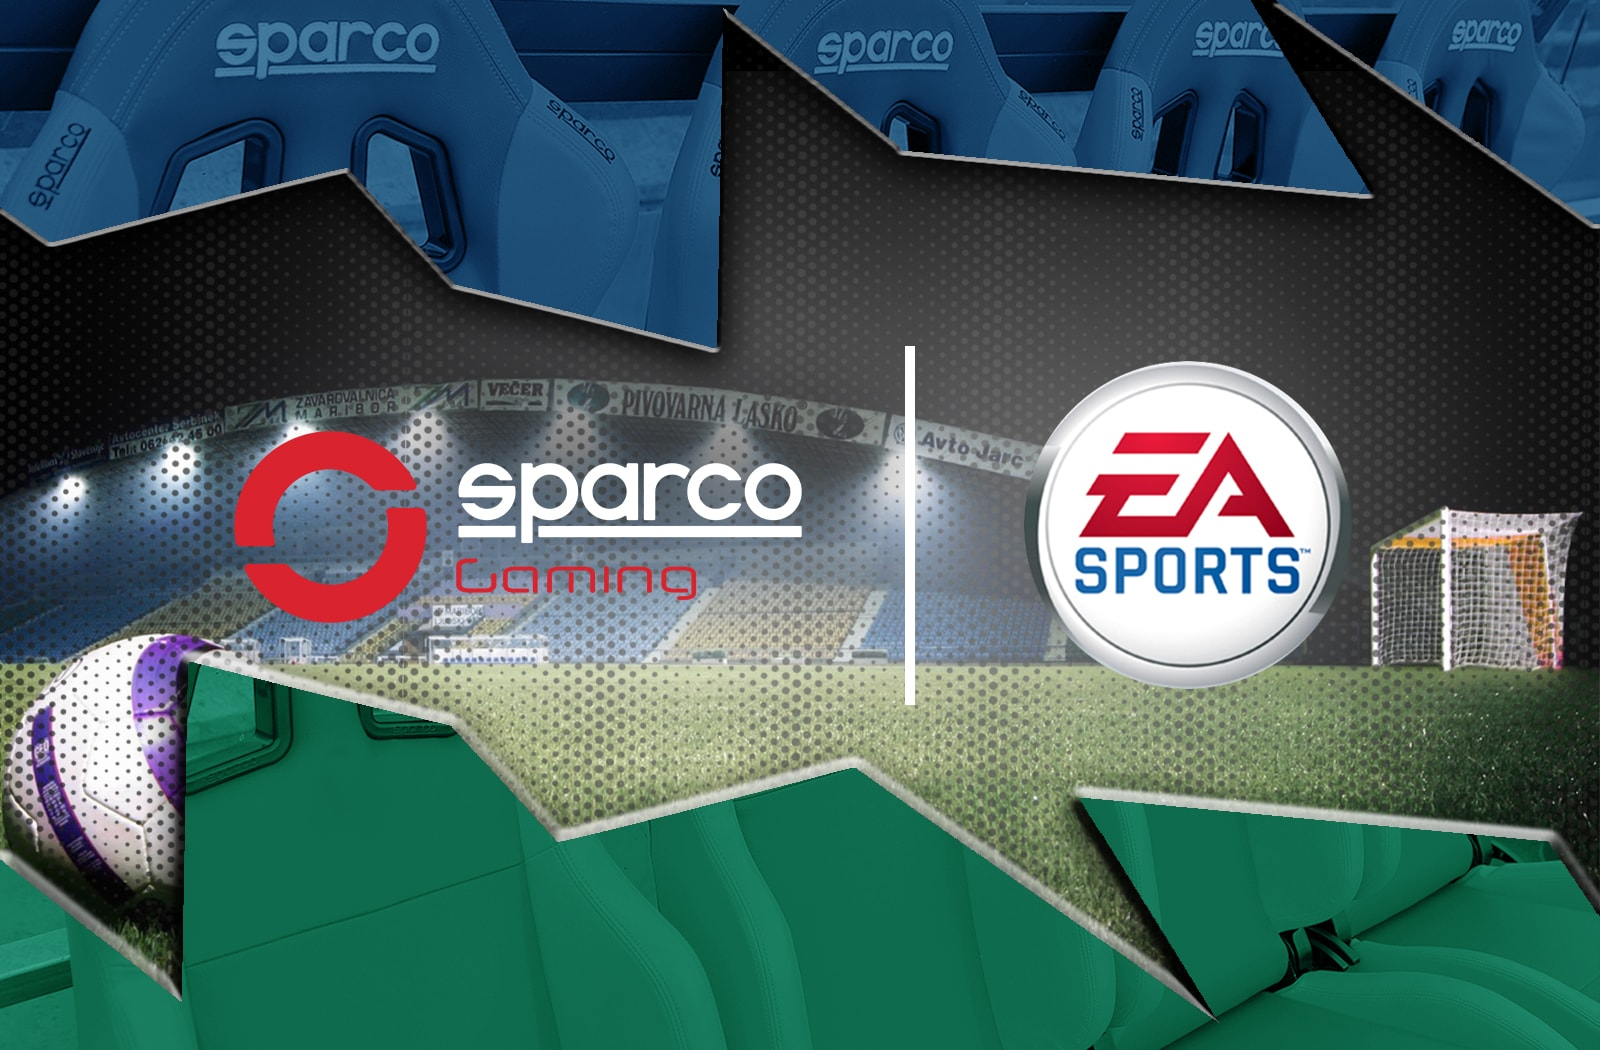 Sparco FIFA Ultimate Team Sponsorship (Photo: Sparco)